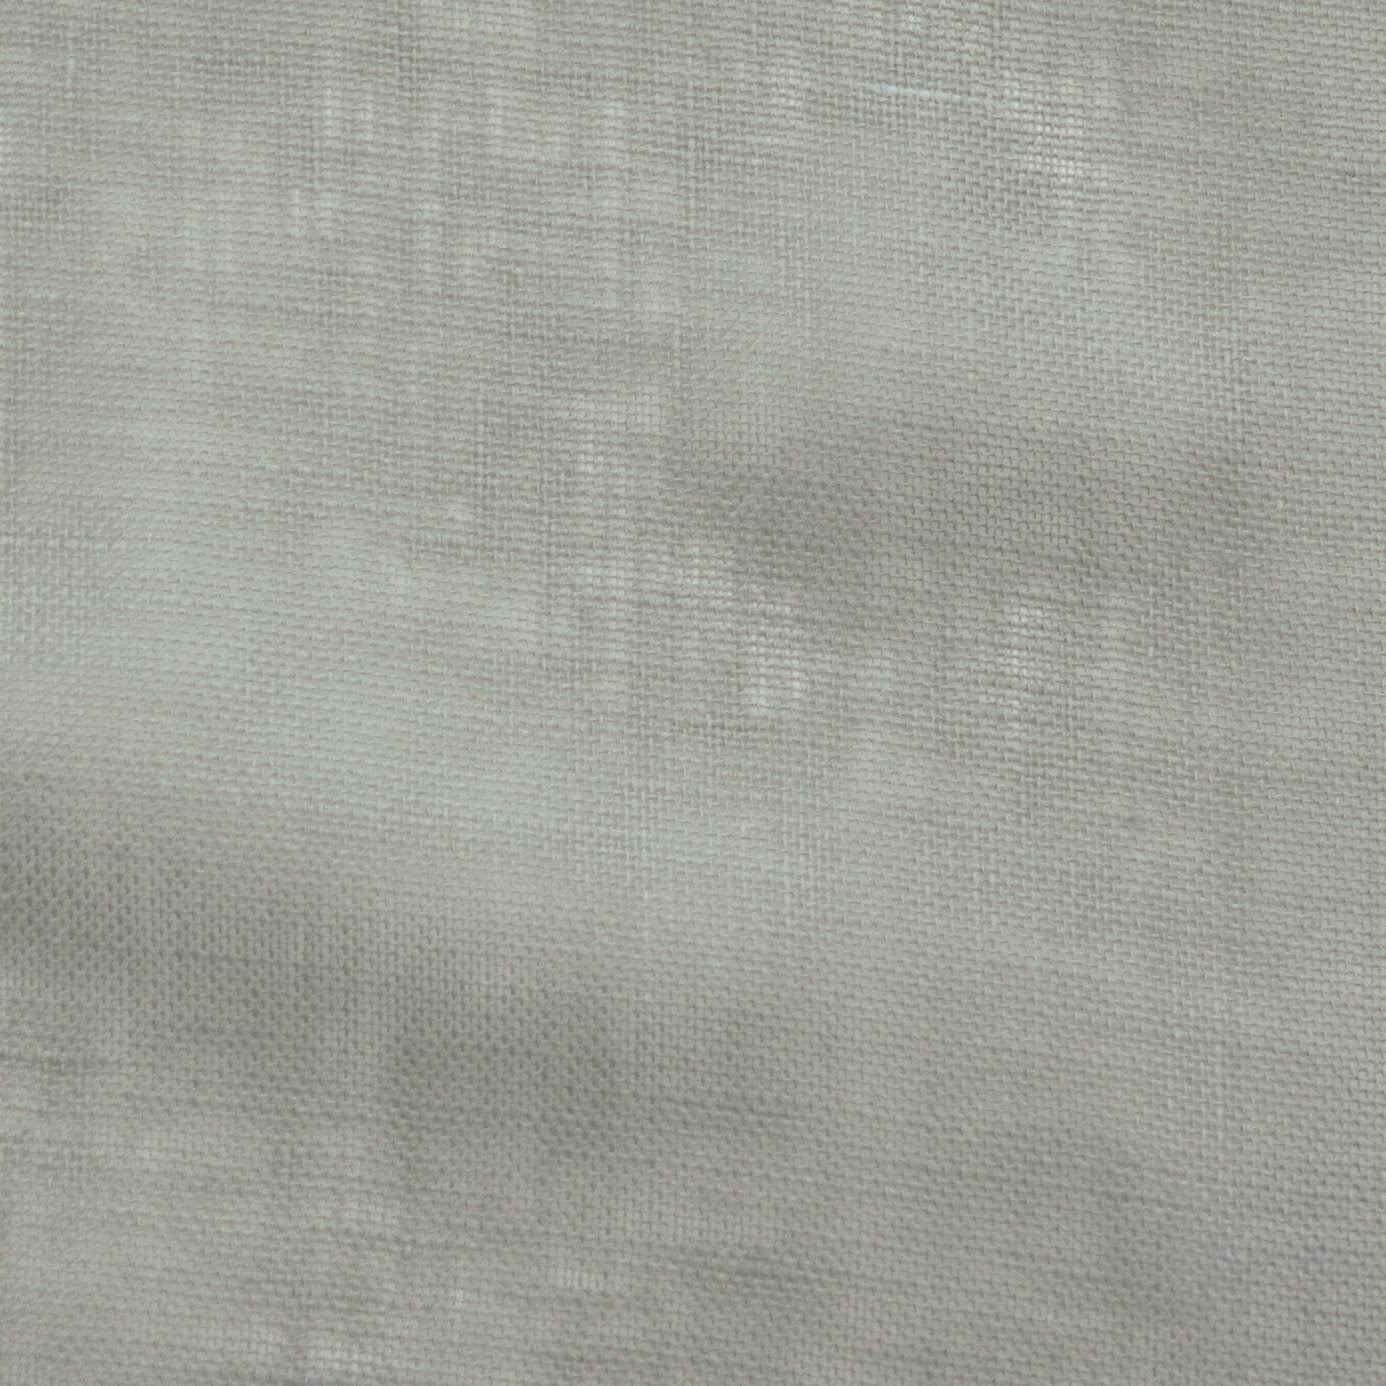 Curtains In Lightweight Sheers Fabric Shark 243345 Sanderson Lightweight Sheers Fabric